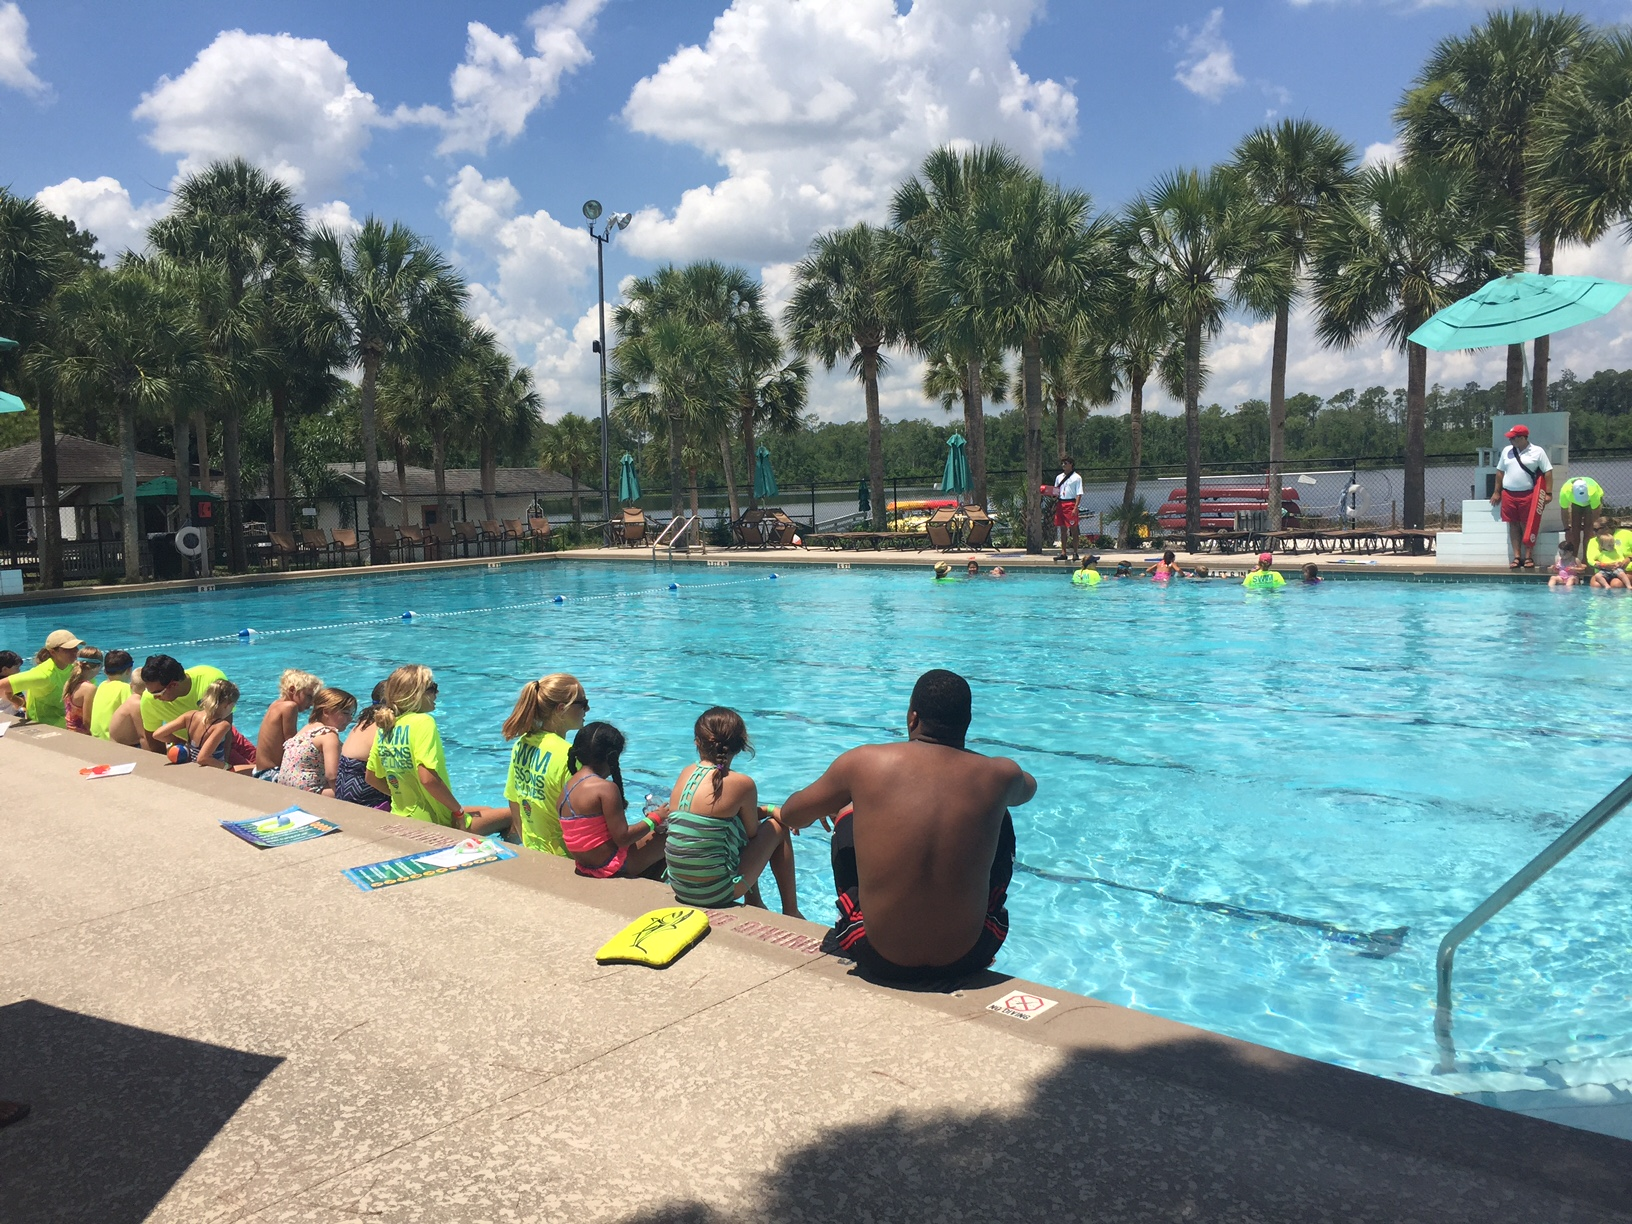 february 11 2016 as the rio summer olympics are around the corner and our chapter being involved in many water safety events in and around orlando this